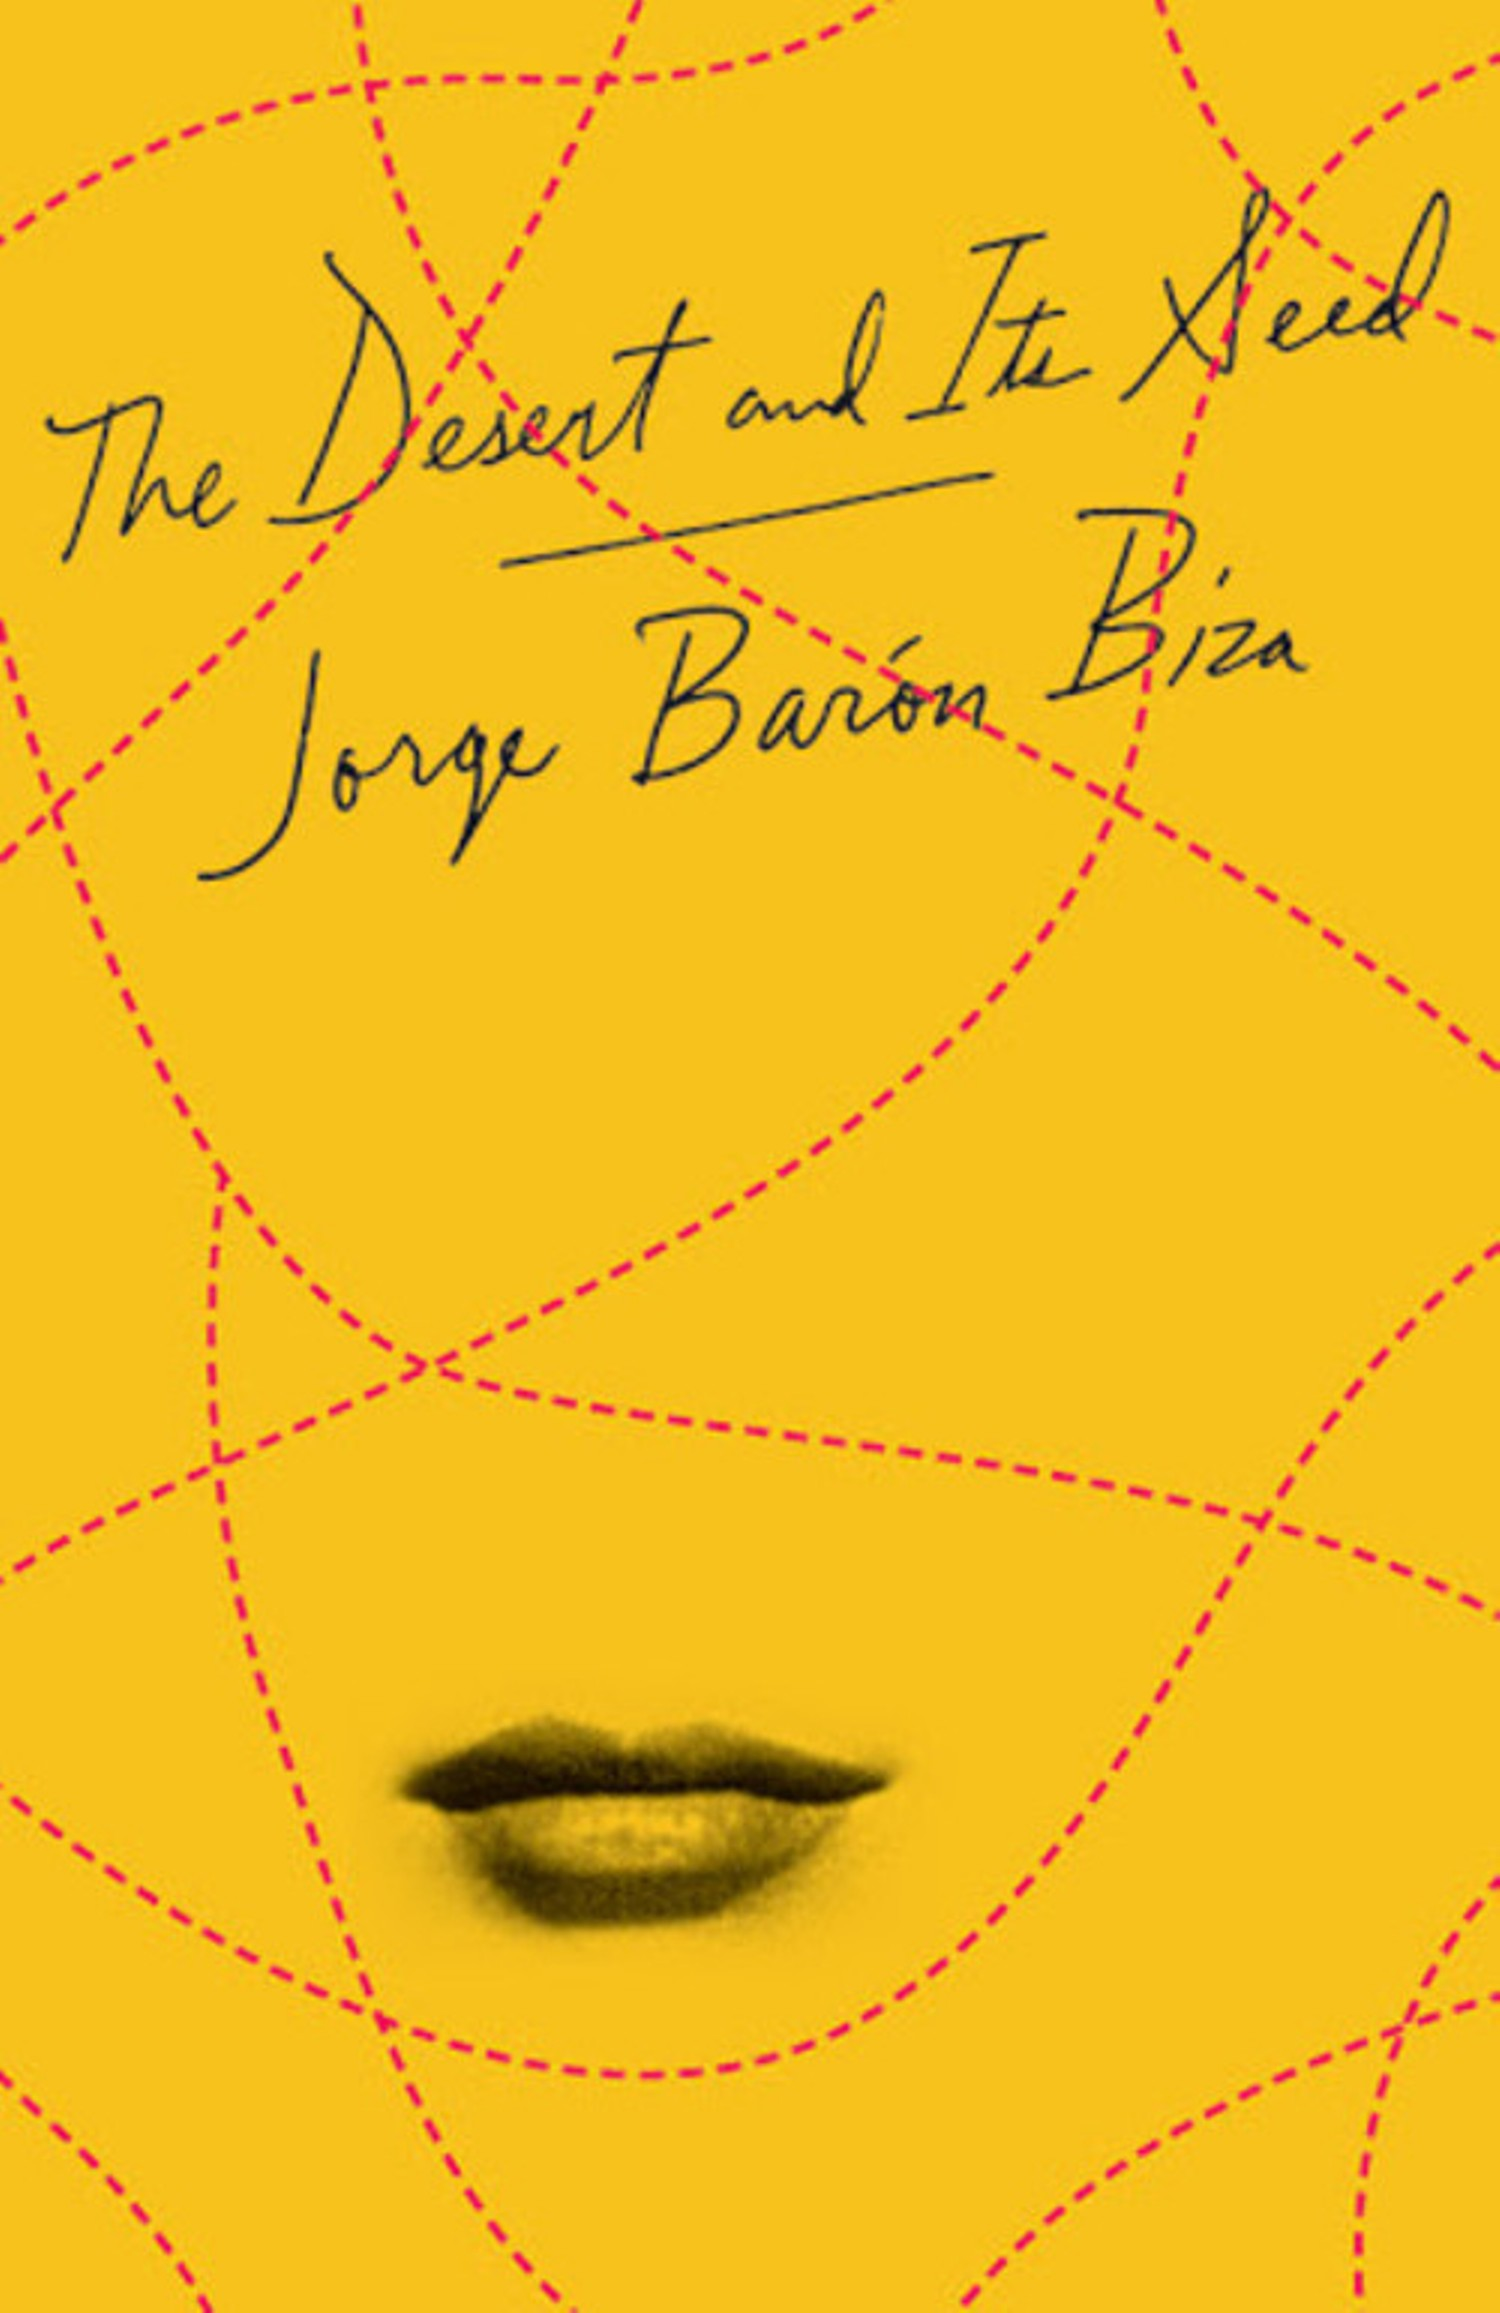 The Desert and Its Seed  by  Jorge Barón Biza  tr.  Camilo Ramirez  (New Directions, April 2018)  Reviewed by  Sam Carter